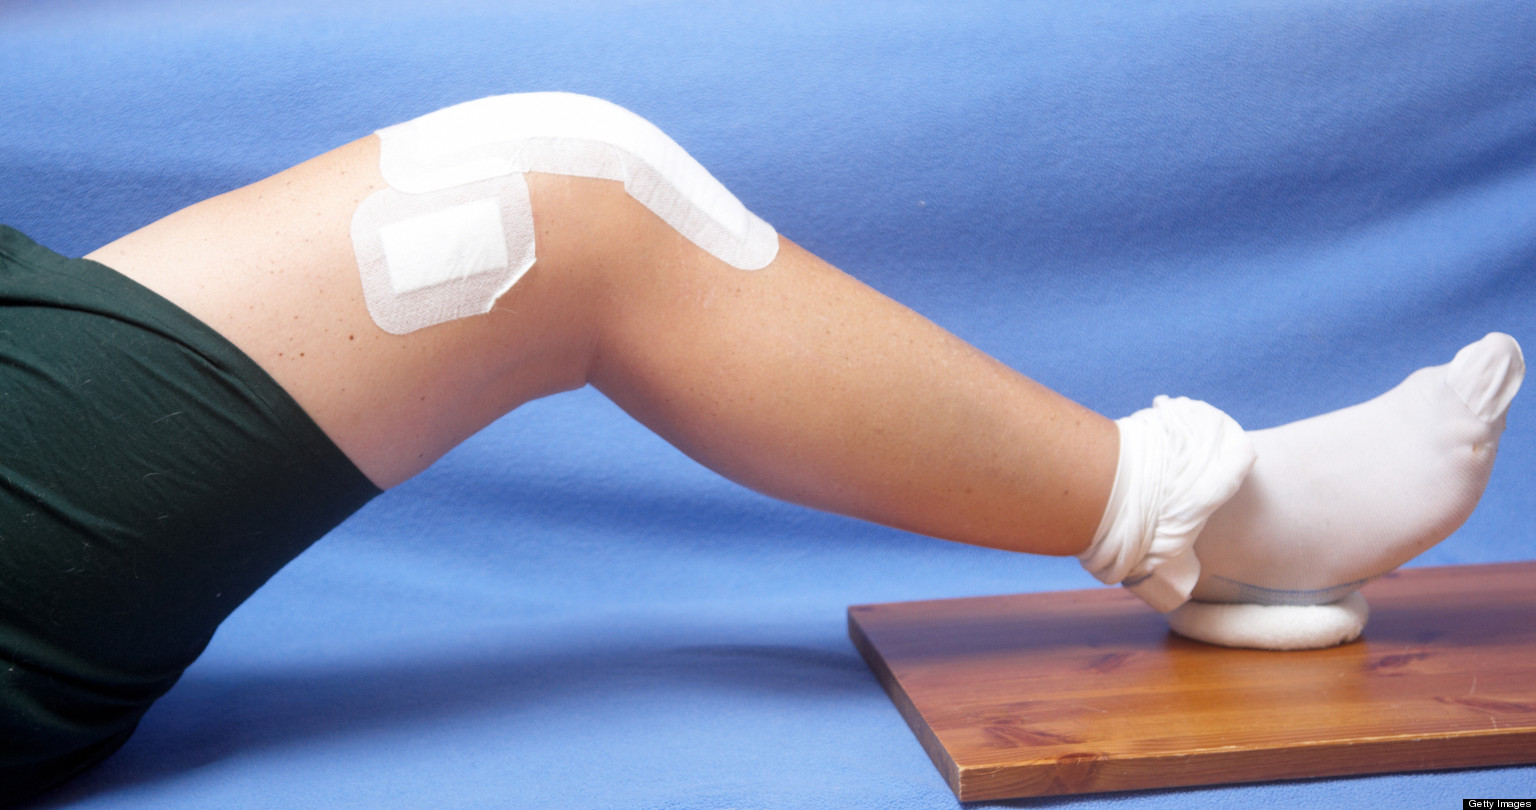 Knee Replacement Recovery Get Ready For The 3 Powerful P